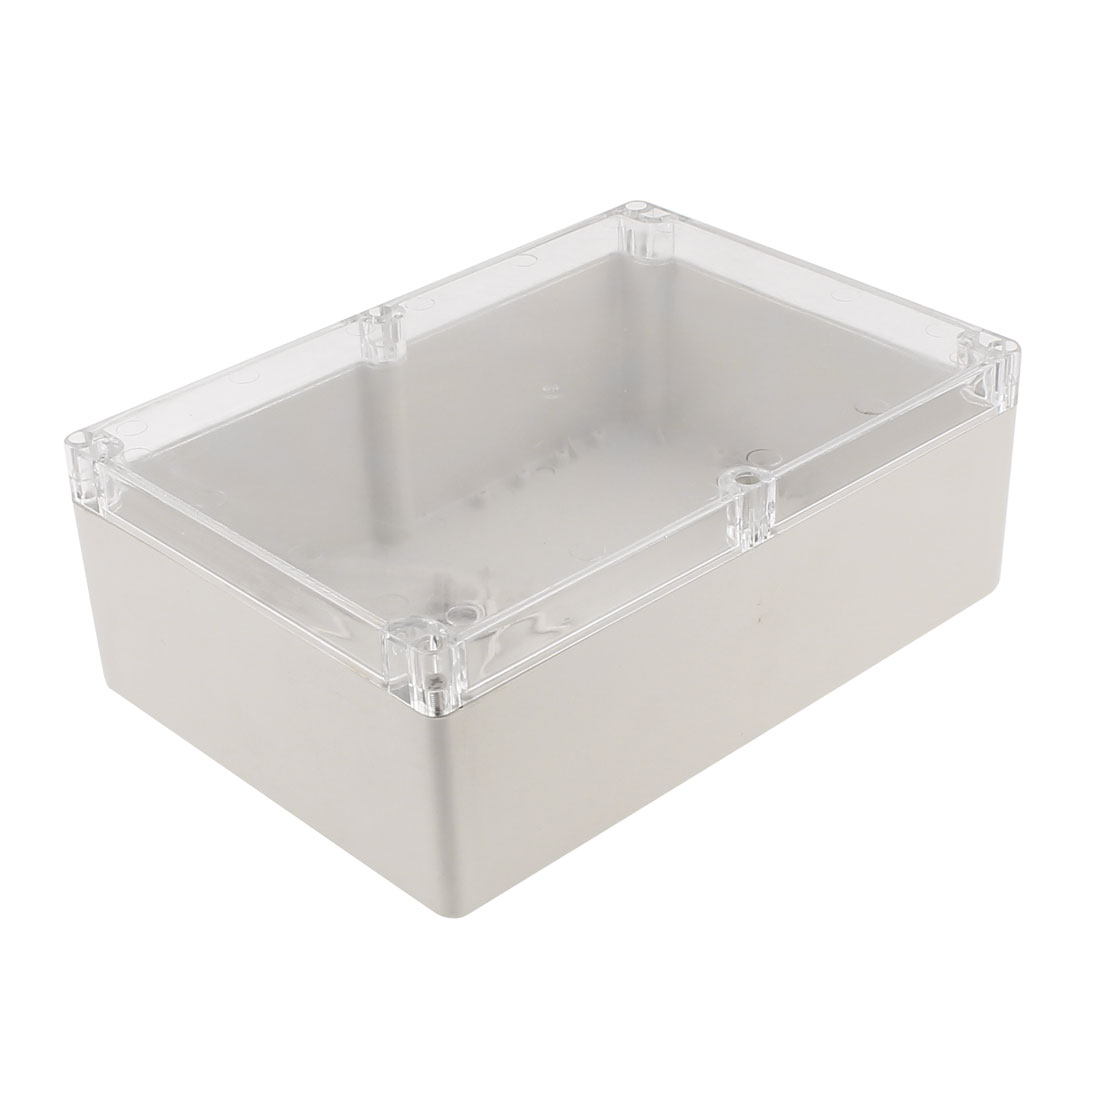 263 x 185 x 60mm Dustproof IP65 Junction Box Terminal Connecting Clear Enclosure